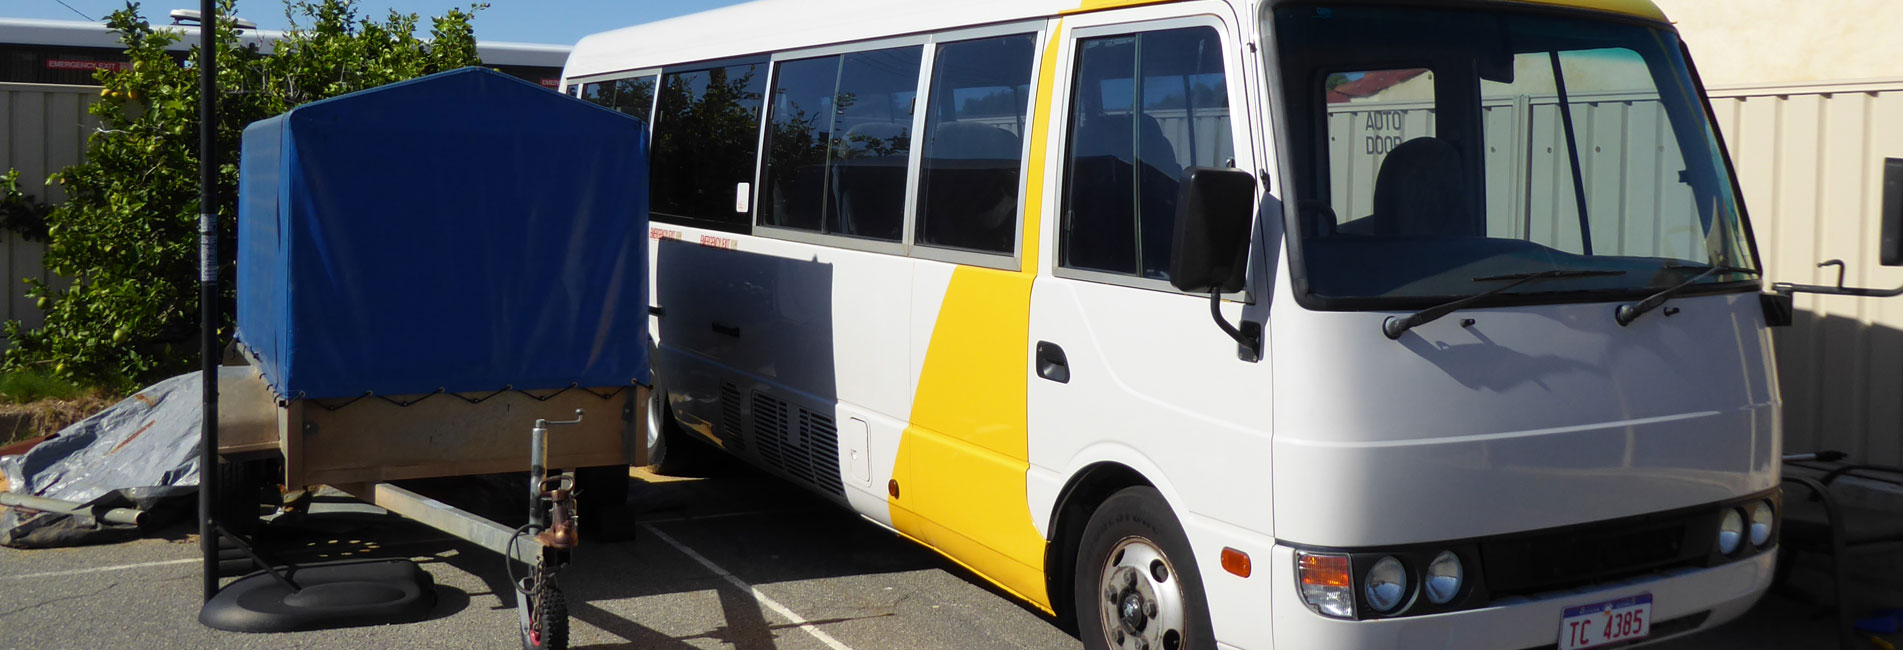 Excursions Kwinana, Winery Tours Wooroloo, Charter Buses Joondalup